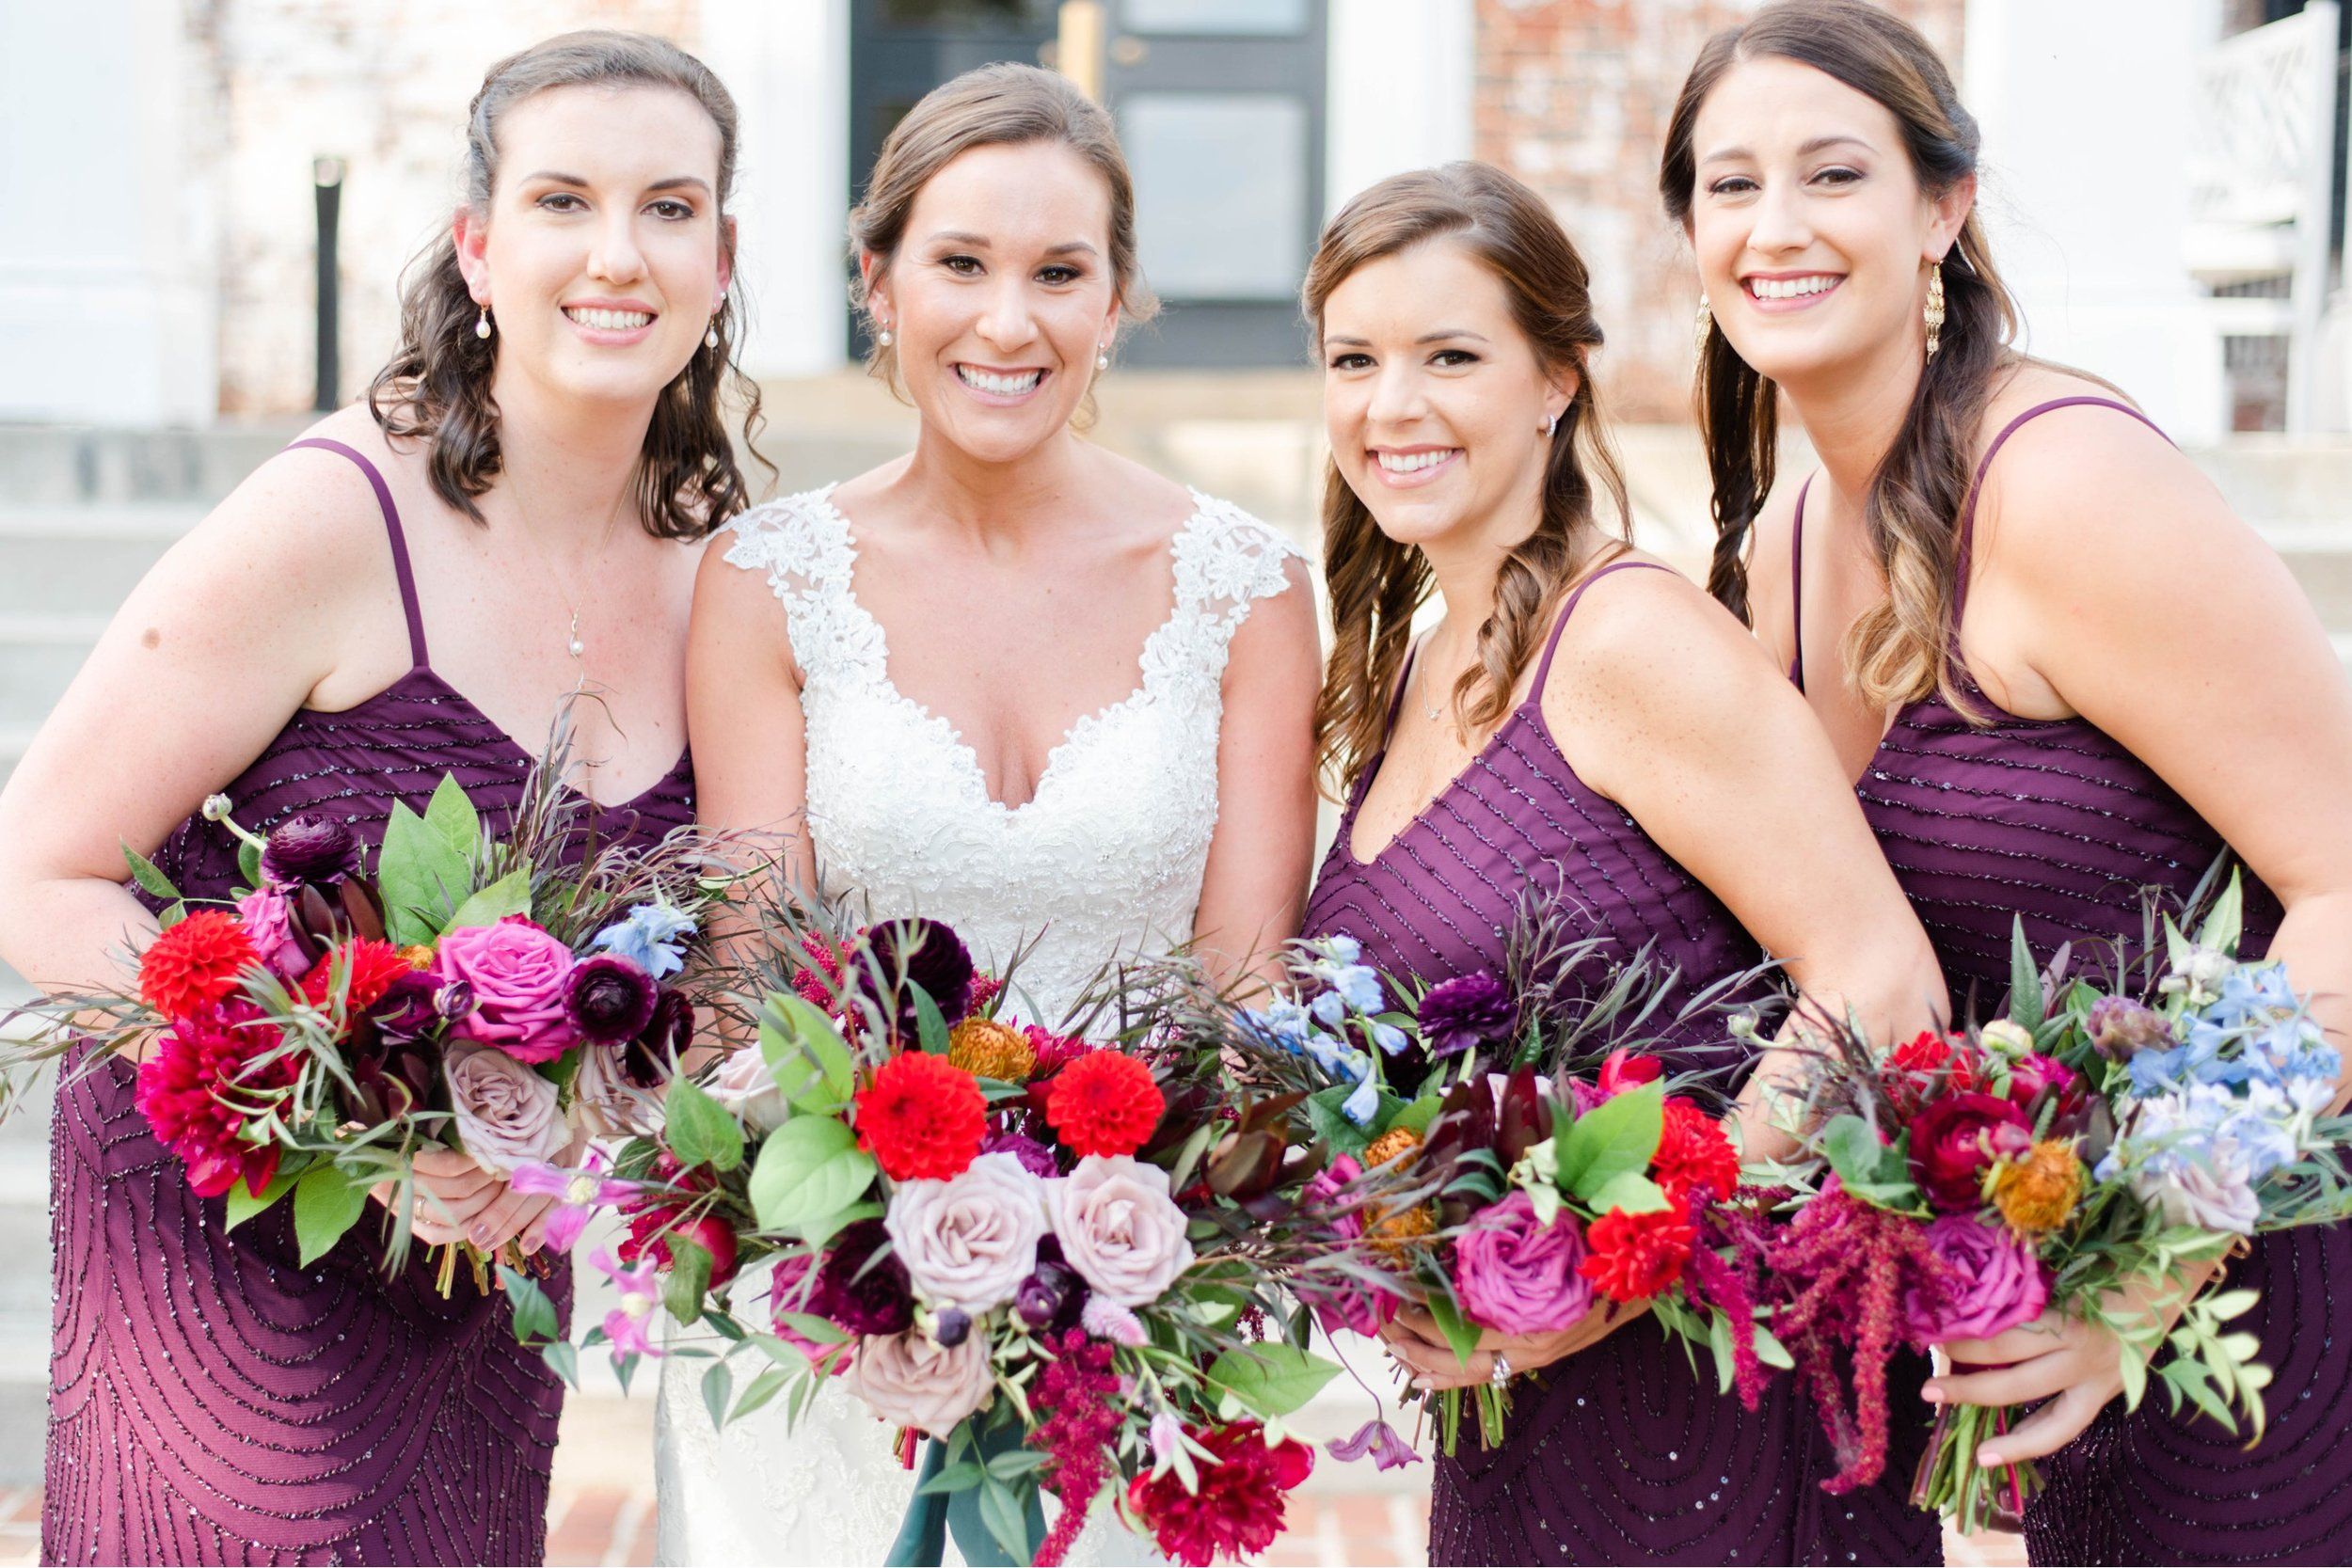 Gordan+Lauren_BoonsboroCountryClubWedding_Virginiaweddingphotographer_LynchburgVi 18.jpg